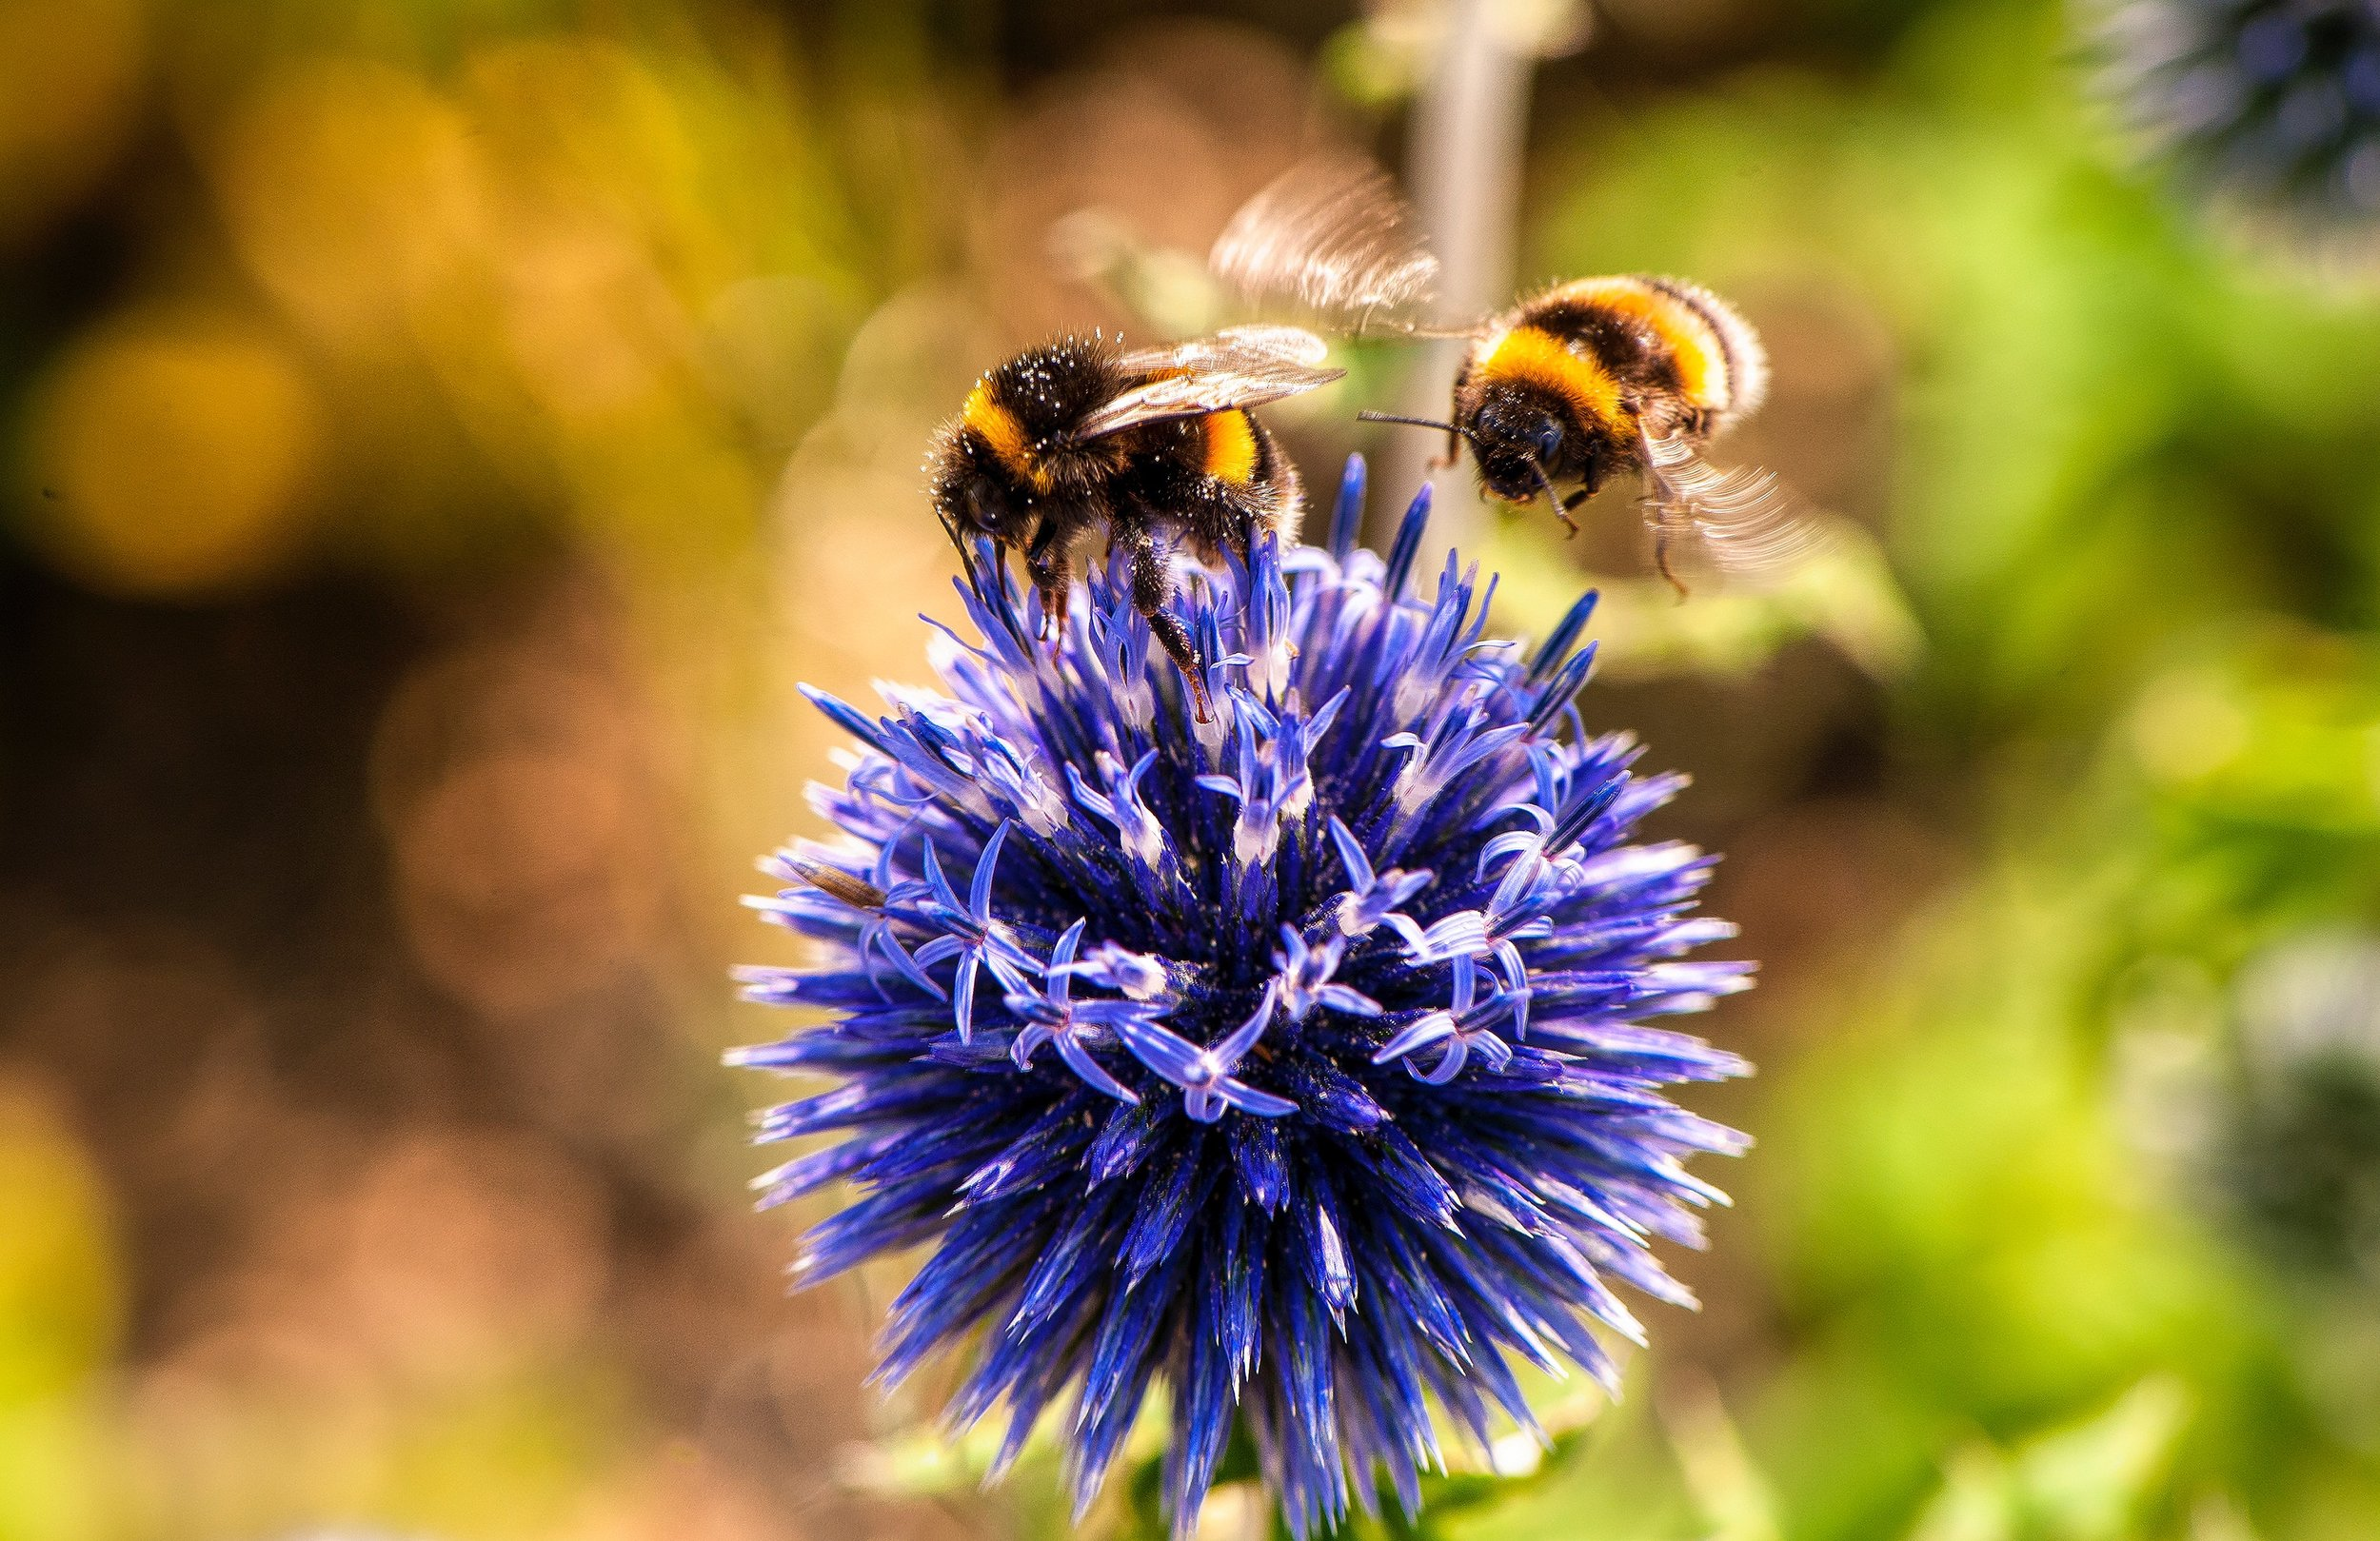 Bumblebees are just one in more than 30,000 bee species. Taking simple steps to attract a variety of pollinators can give you a healthier garden and help support your local ecosystem.